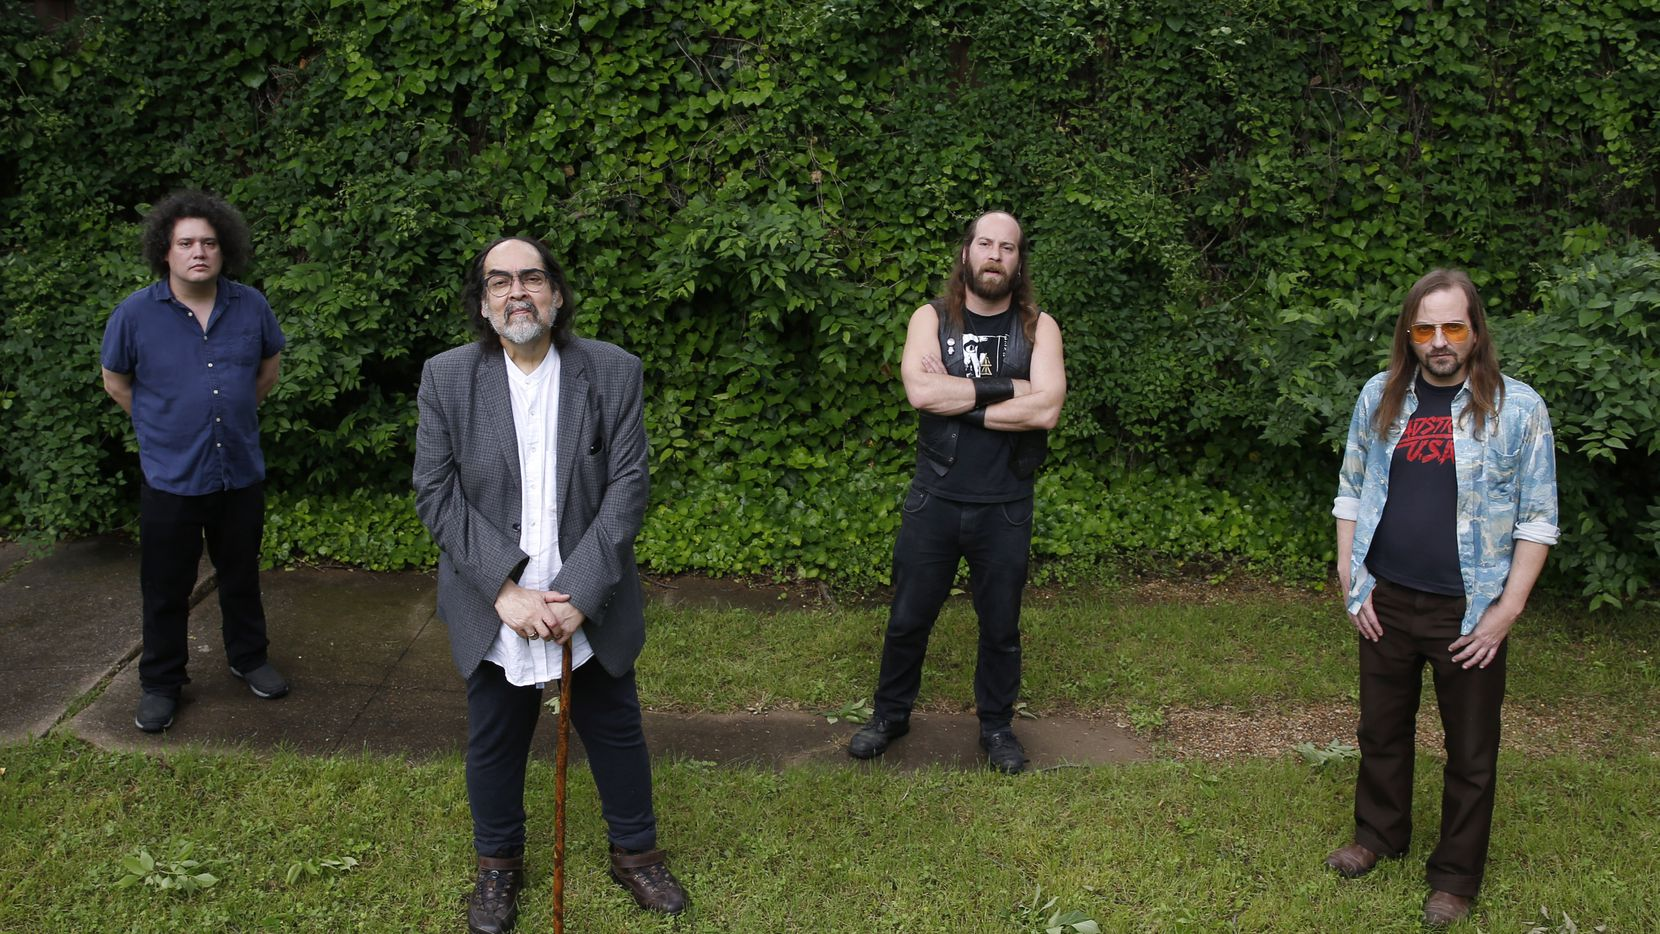 Aaron Gonzalez, Dennis Gonzalez, Stefan Gonzalez and Daron Beck pose for a portrait at the home of Dennis Gonzalez in Dallas on Tuesday, April 28, 2020. Yells at Eels and Pinkish Black recorded an album together while members from both groups had life-threatening health issues.